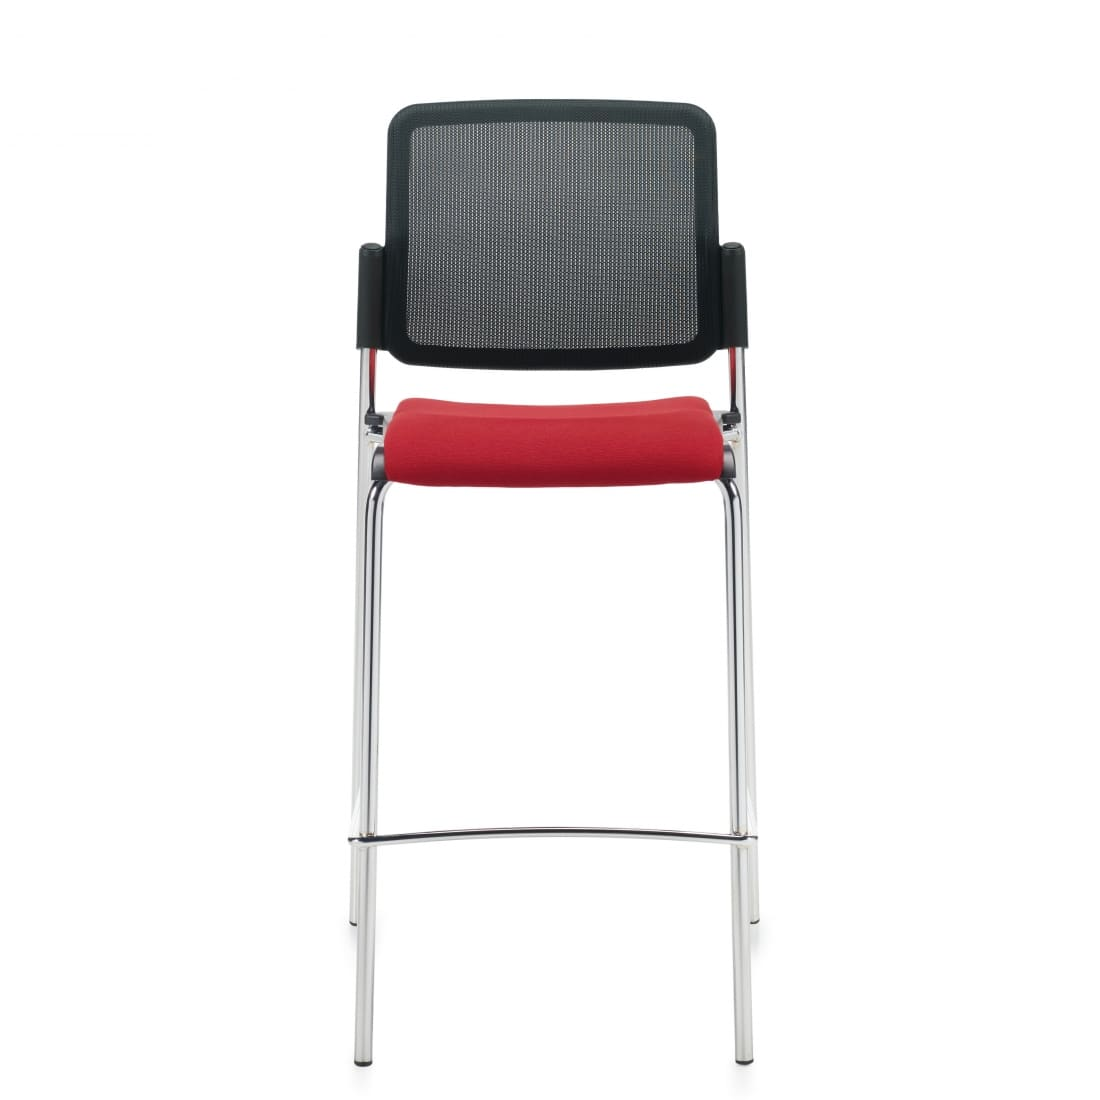 Armless Bar Stool, Red Upholstered Seat & Black Mesh Back With Chrome Frame (6559MB)